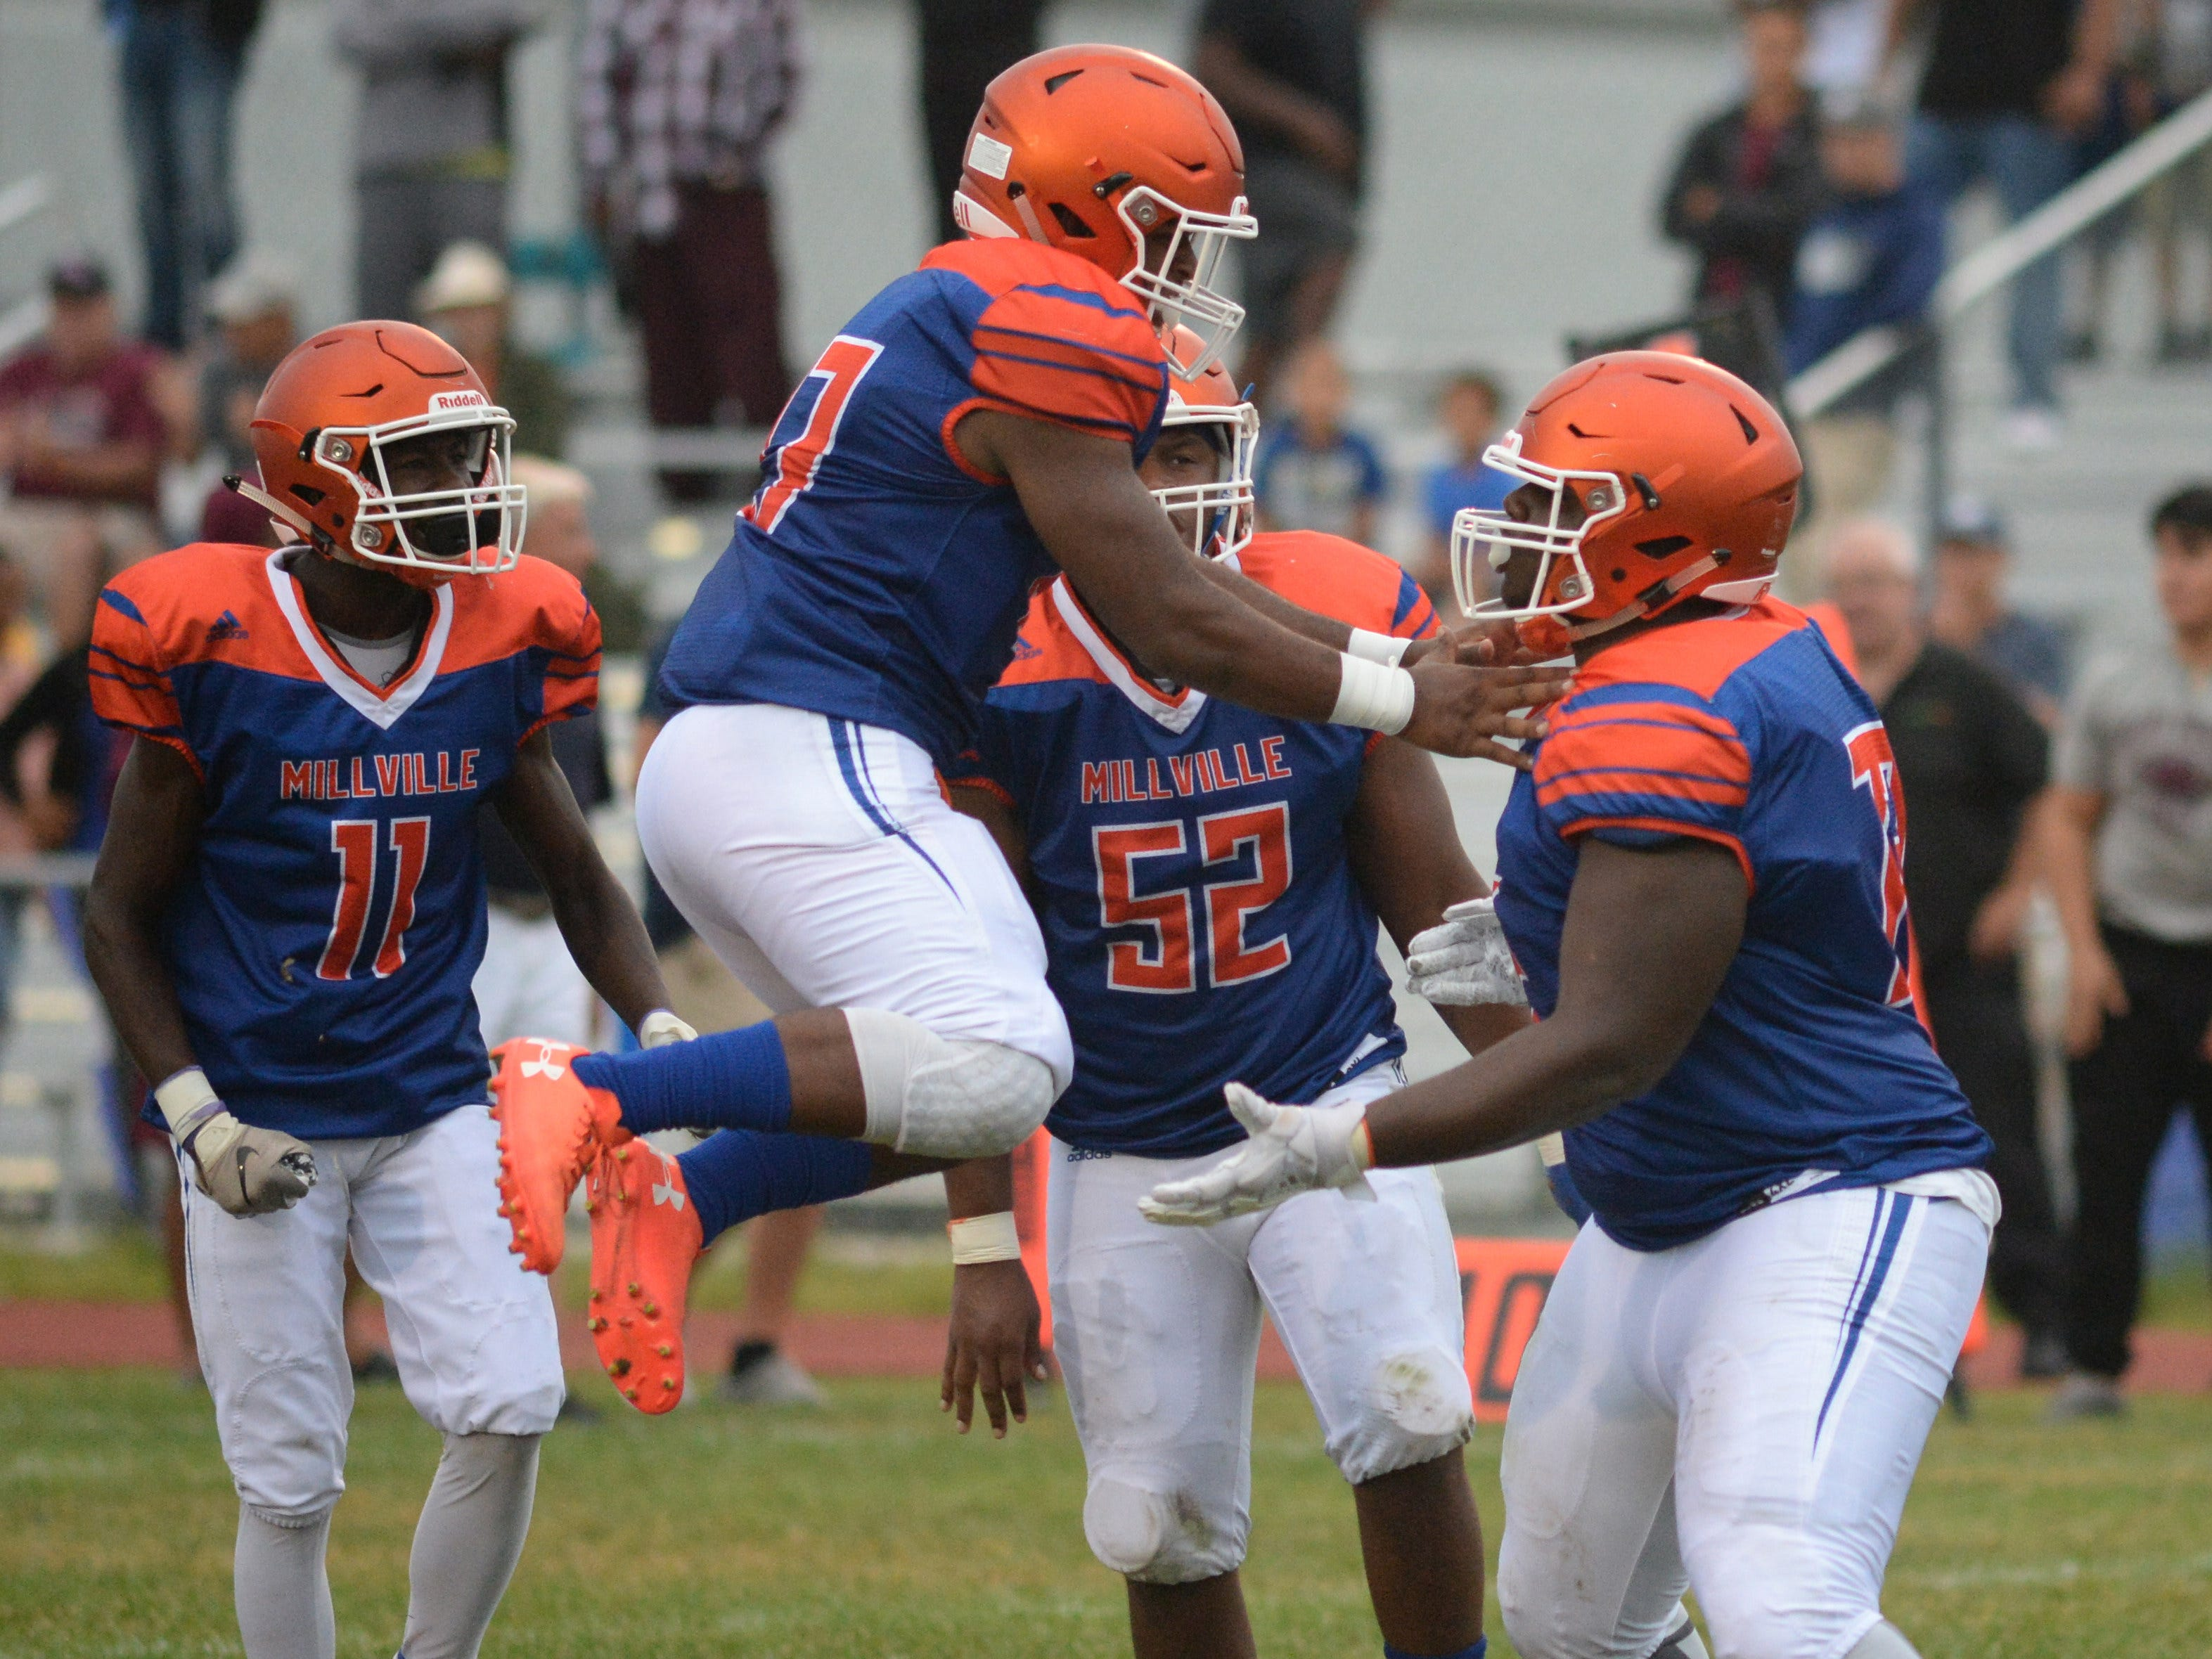 Millville's Sammy File, right, and Darius Watson react after making a defensive stop during the season opening football game against St. Peter's Prep at Millville Memorial High School, Friday, Aug. 31, 2018.